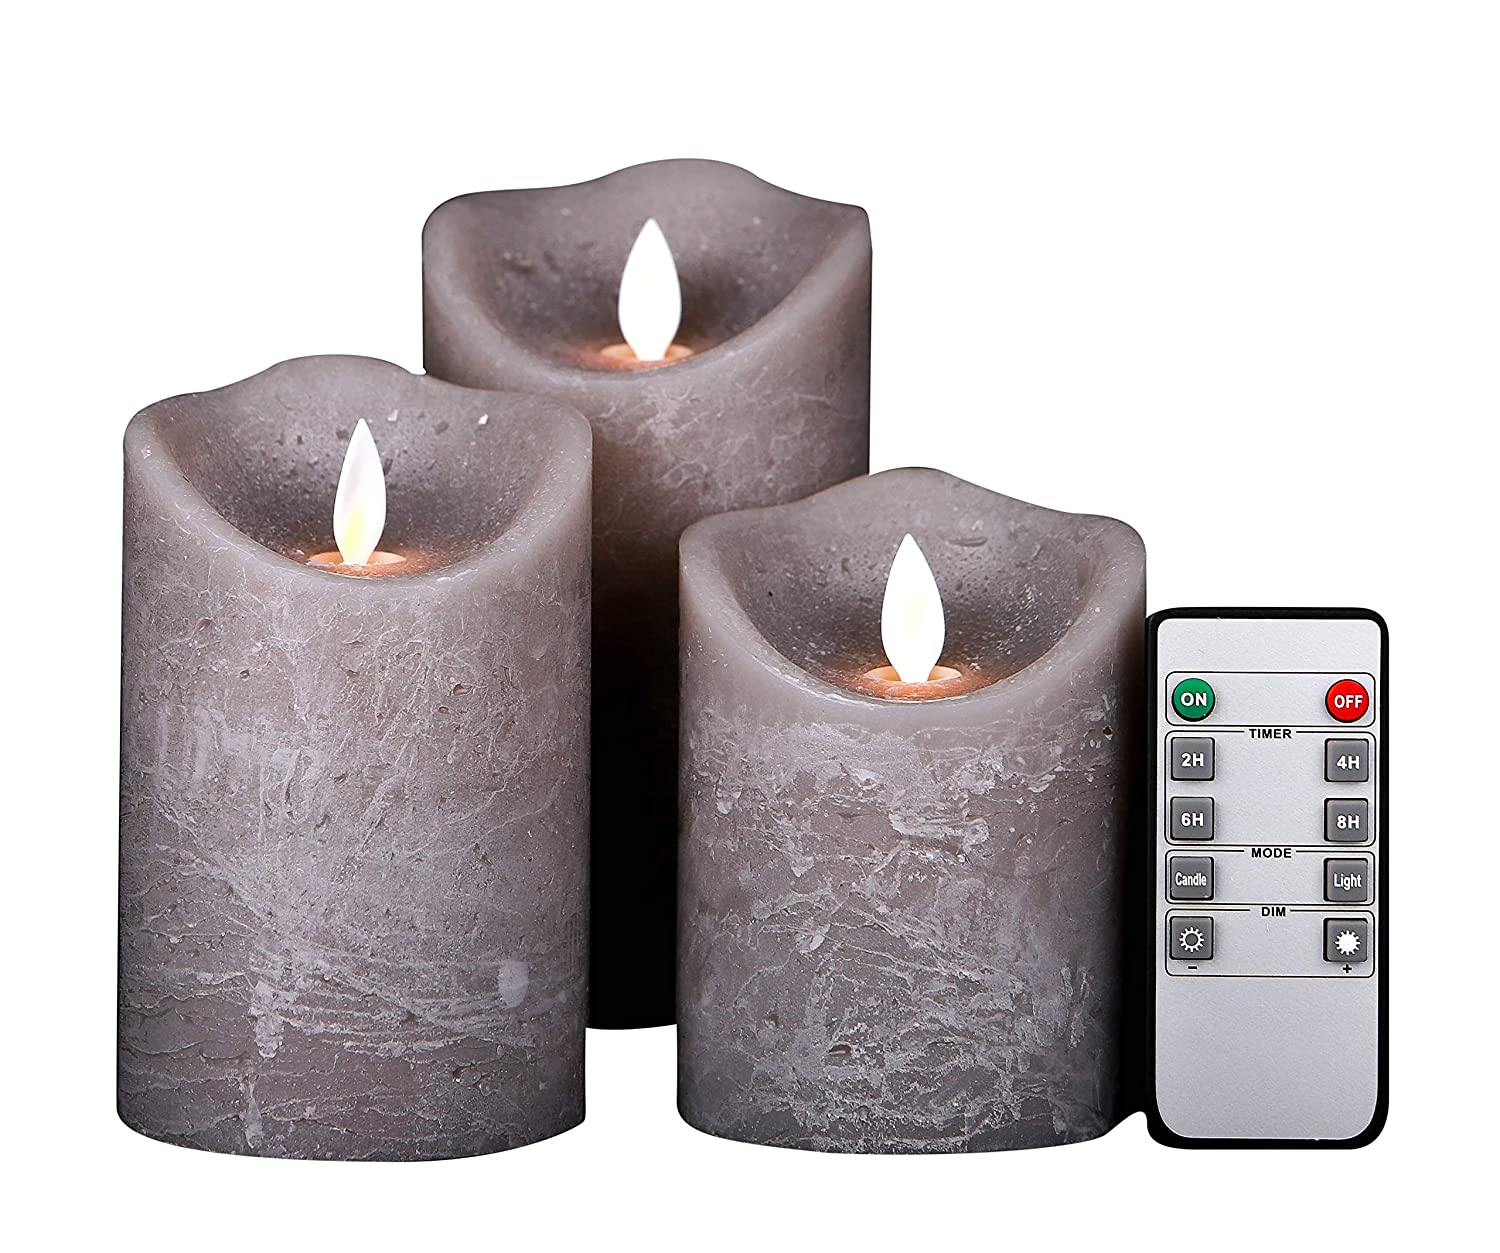 Kitch Aroma Marble Grey Color flameless Candles 3 x 4/5/6inch Battery Operated LED Pillar Candles with Moving Flame Wick and Timer,Wave Top KA0018GS03